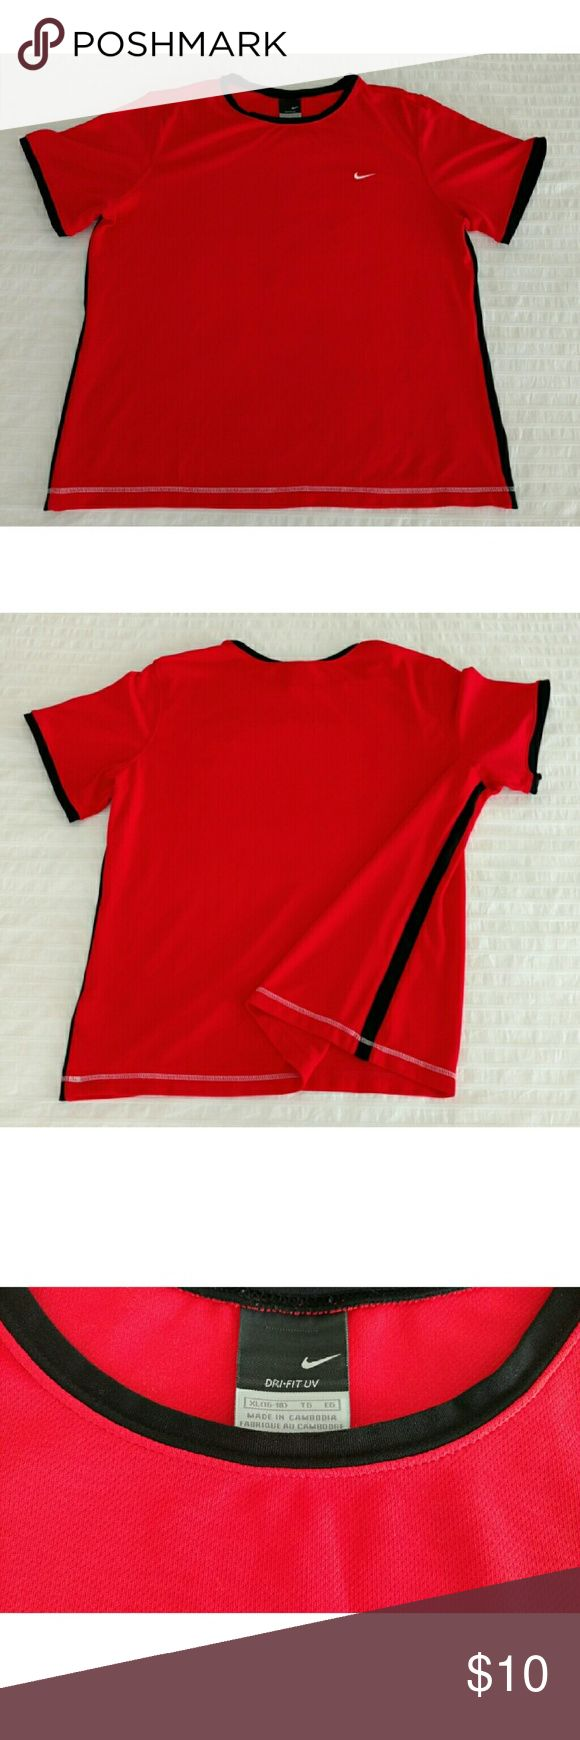 """Nike Dri-Fit UV tee Short-sleeved Nike Dri-Fit UV shirt in true red with black details. 22"""" underarm to underarm, 25.25"""" shoulder hem at neck to bottom front hem, 8.5"""" shoulder hem to end of sleeve. Priced to reflect flaw: minor pull in fabric on front of left arm - see photo. 100% polyester, machine washable. No trades, no modeling. Nike Shirts & Tops Tees - Short Sleeve"""